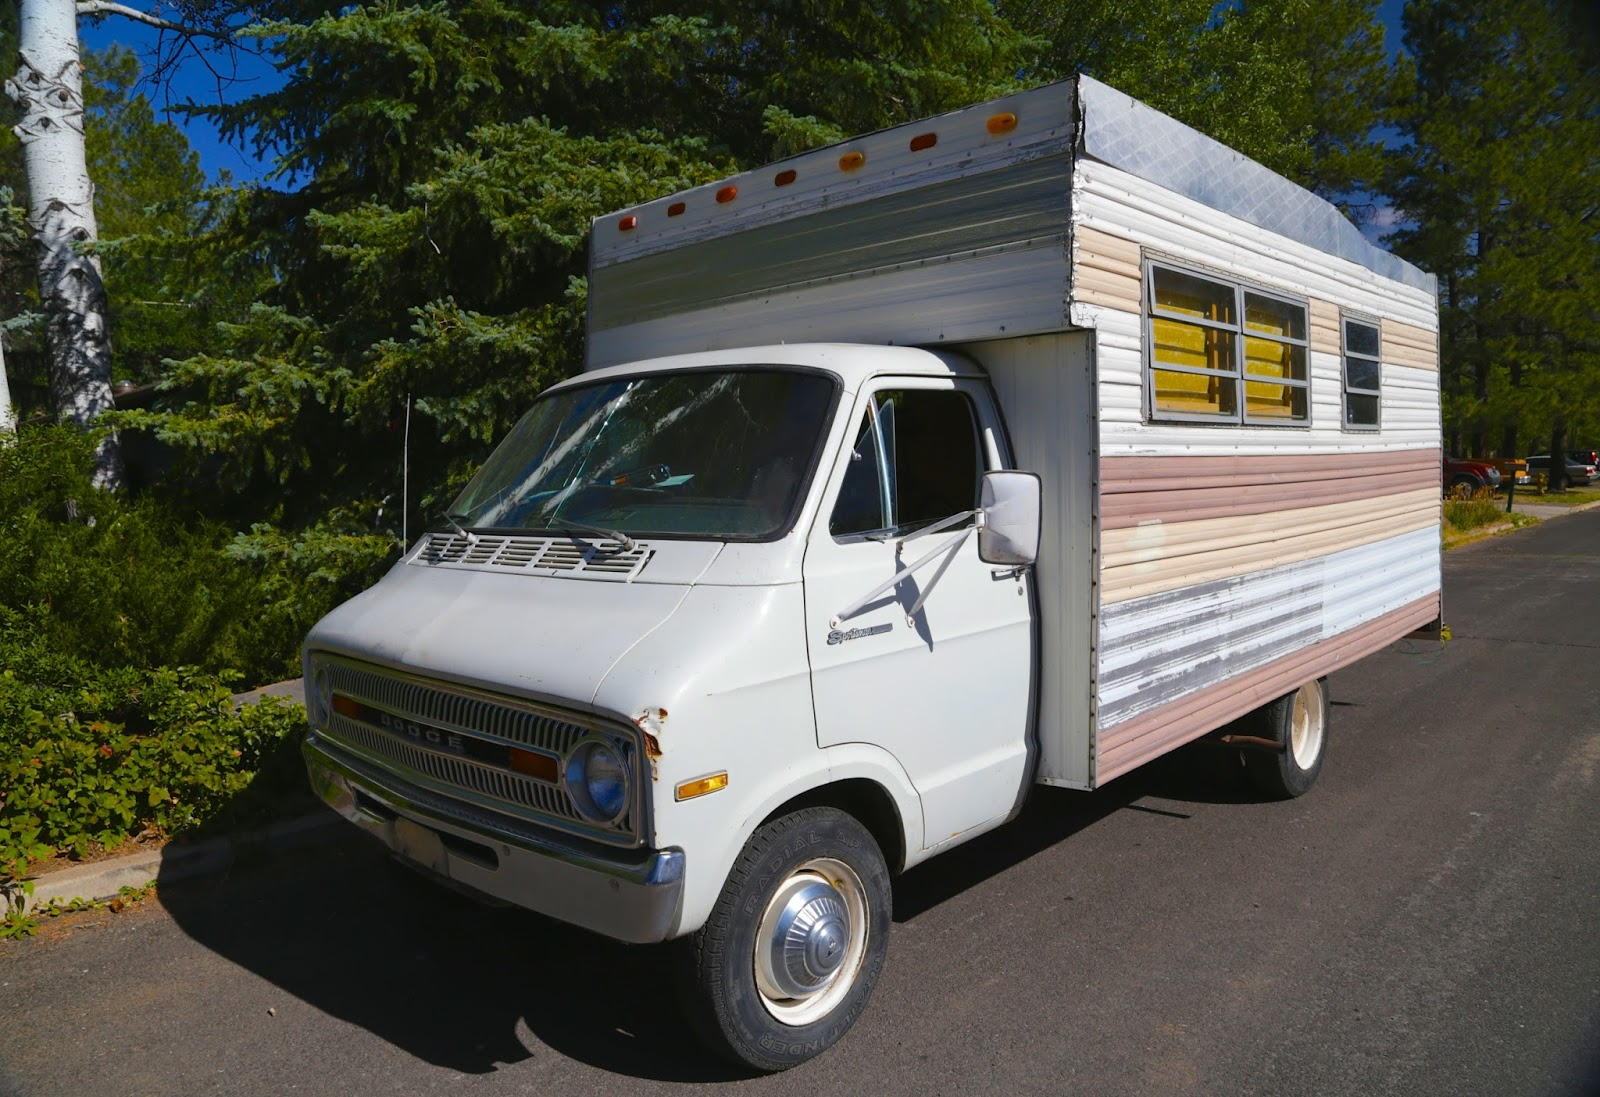 1975 Dodge Sportsman Motorhome – Wonderful Image Gallery